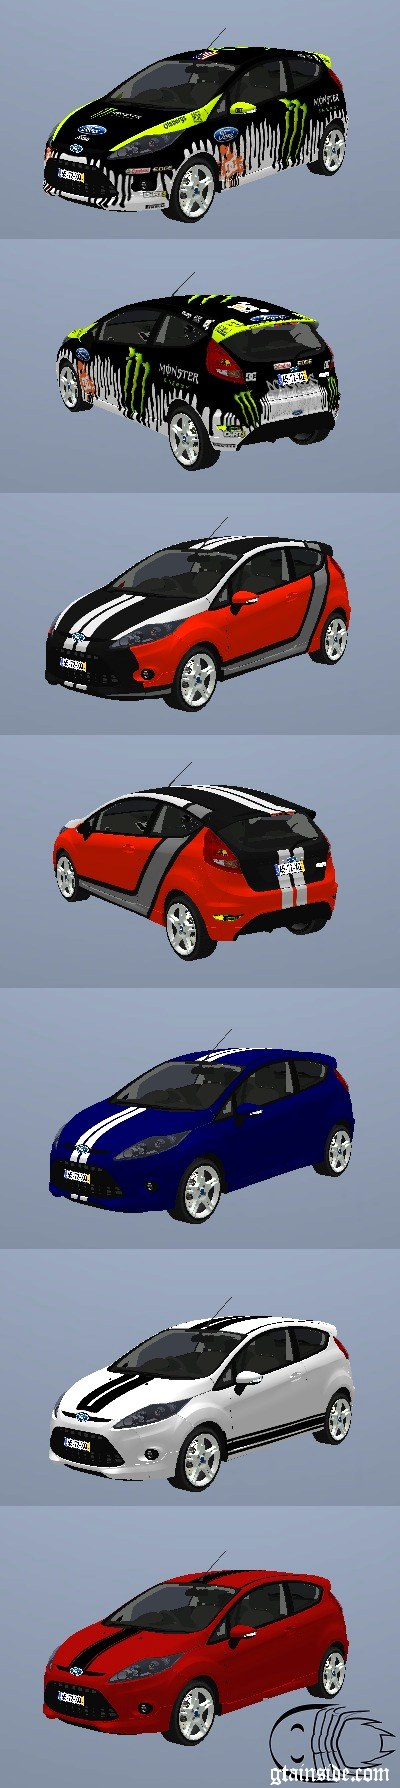 Paintjobs for 2010 Ford Fiesta ZETEC S